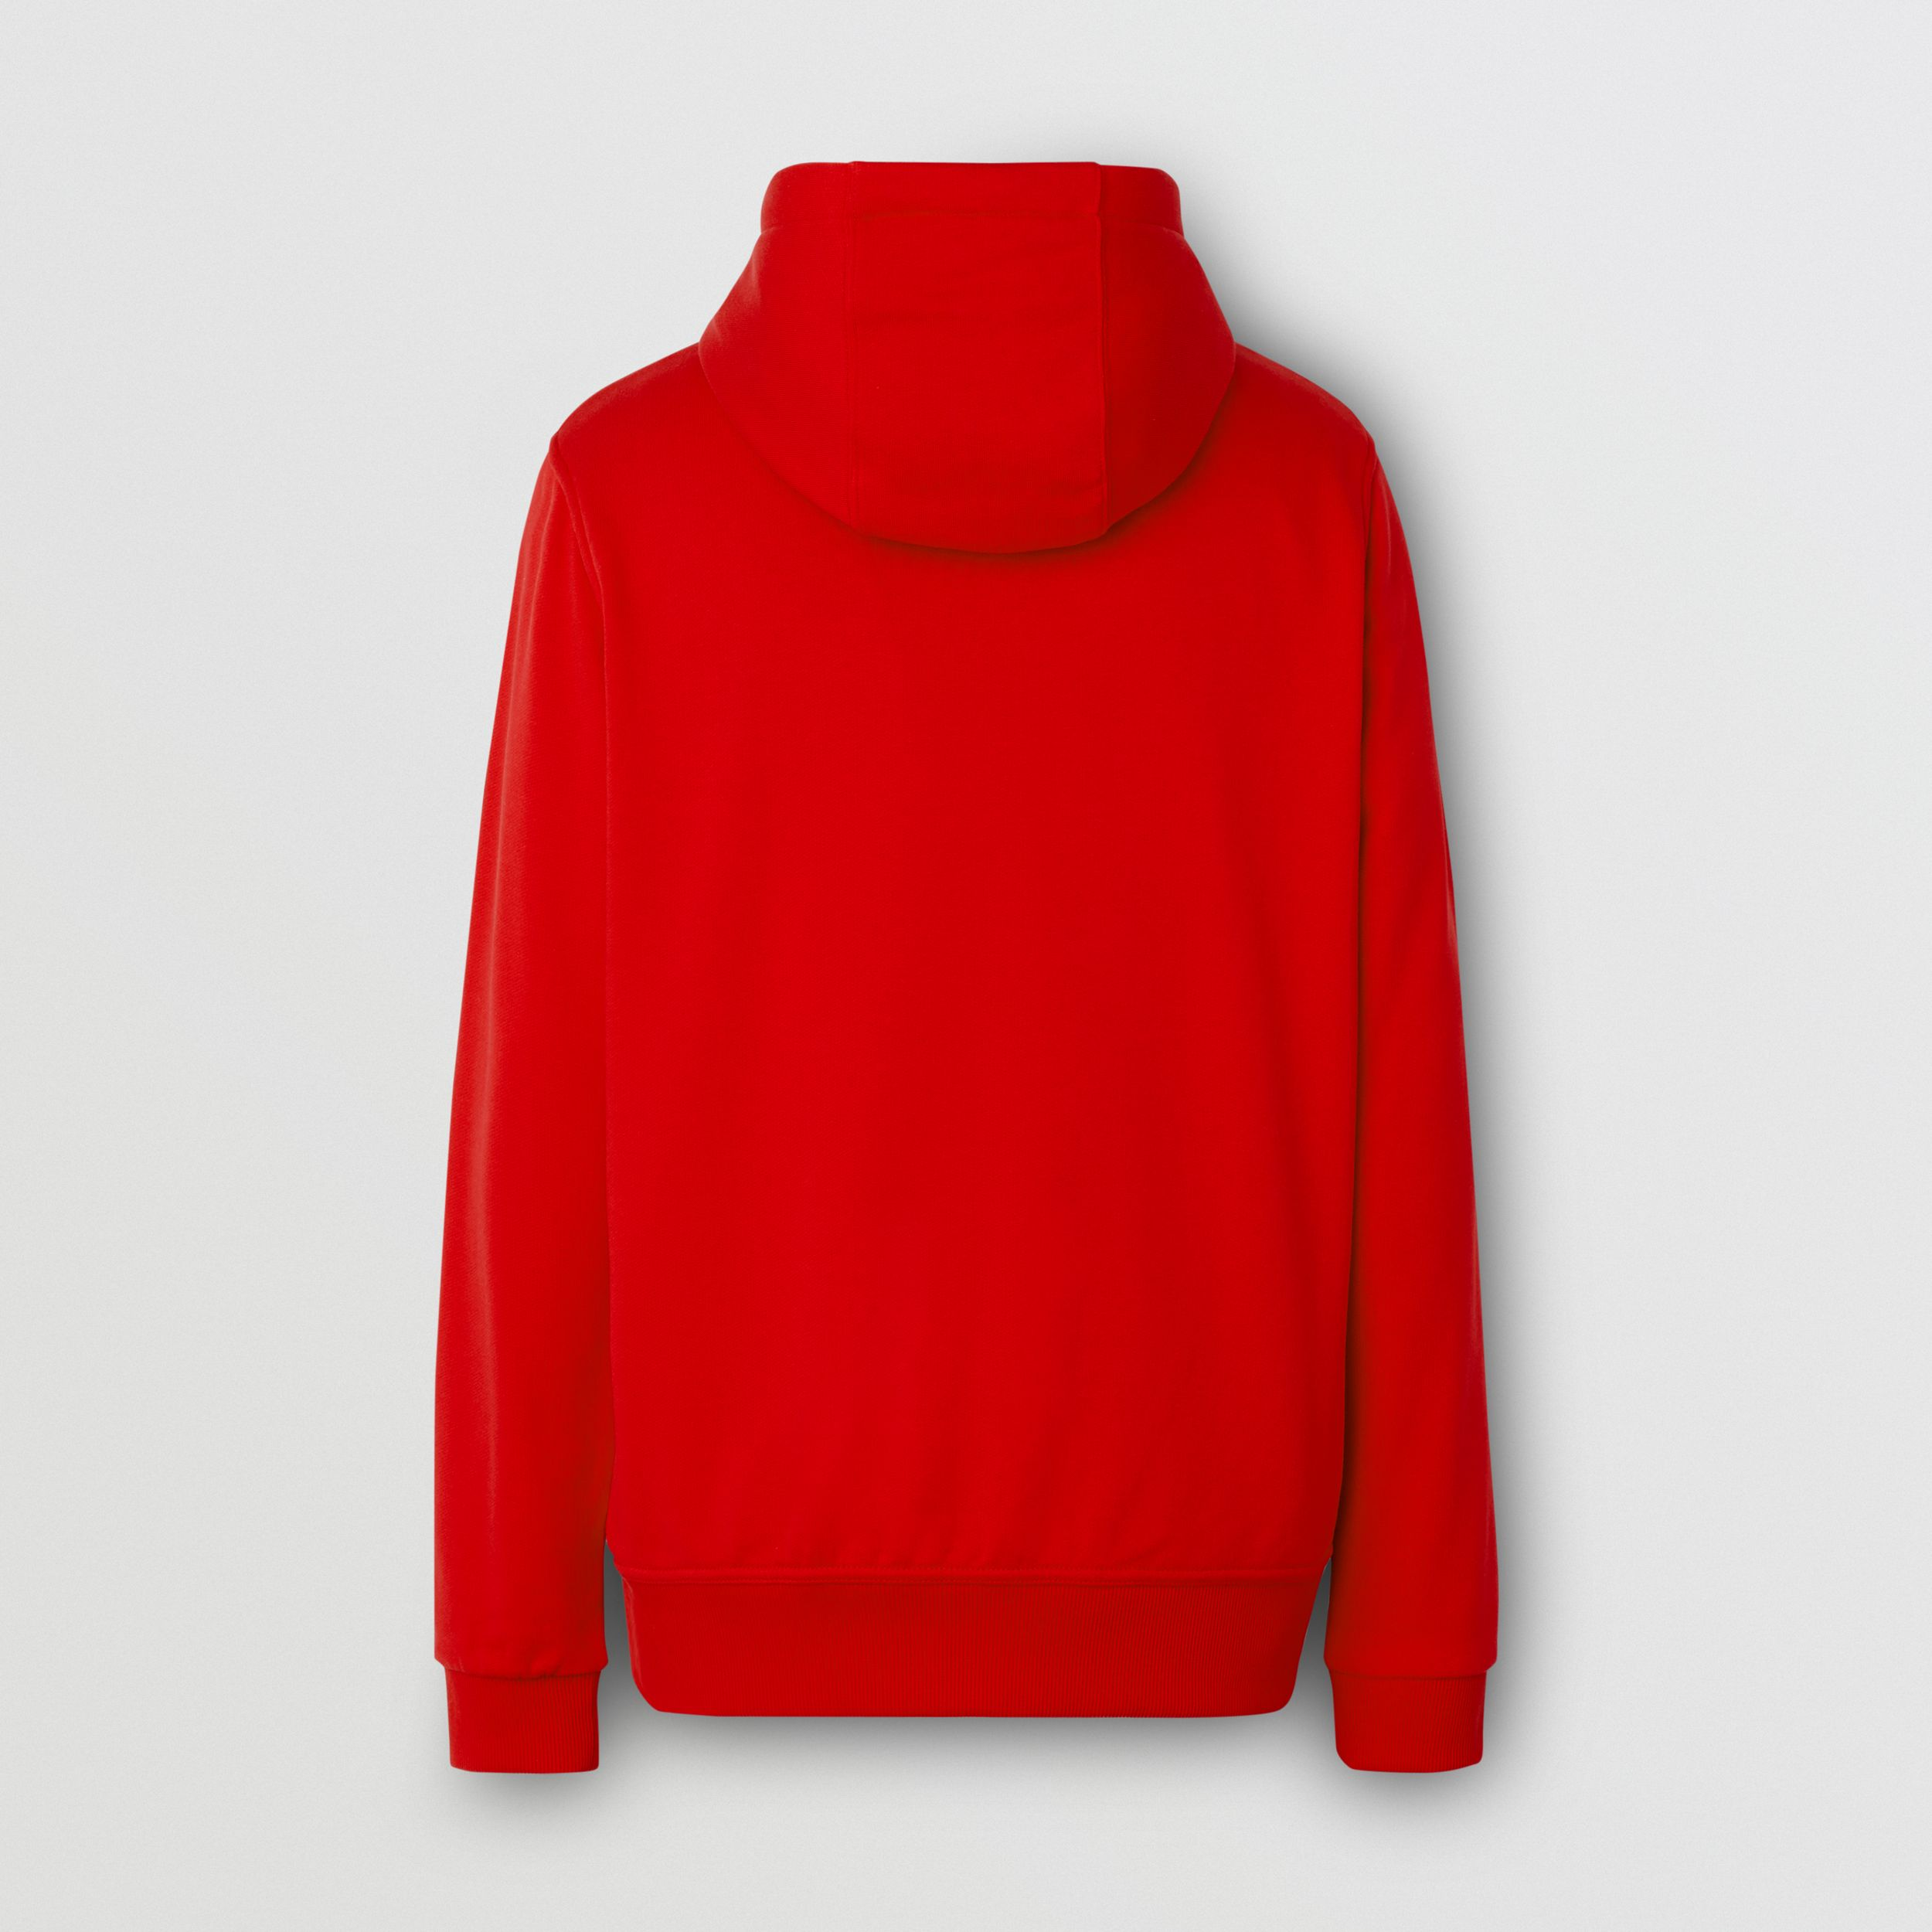 Logo Appliqué Cotton Hooded Top in Bright Red - Men | Burberry - 2